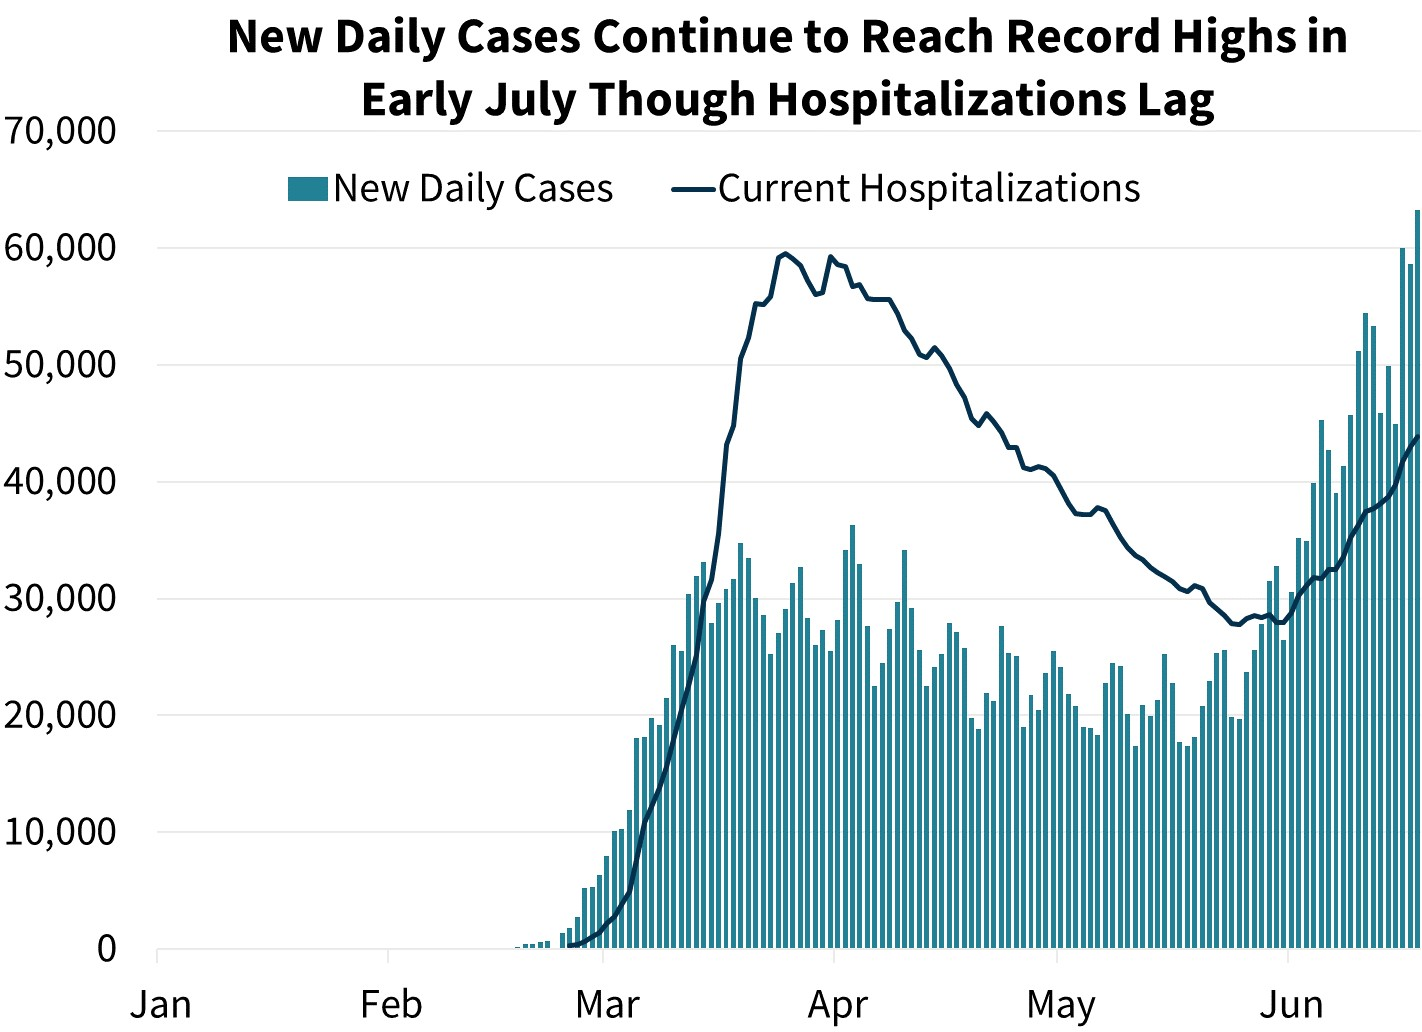 New Daily Cases Continue to Reach Record Highs in Early June Though Hospitalizations Lag